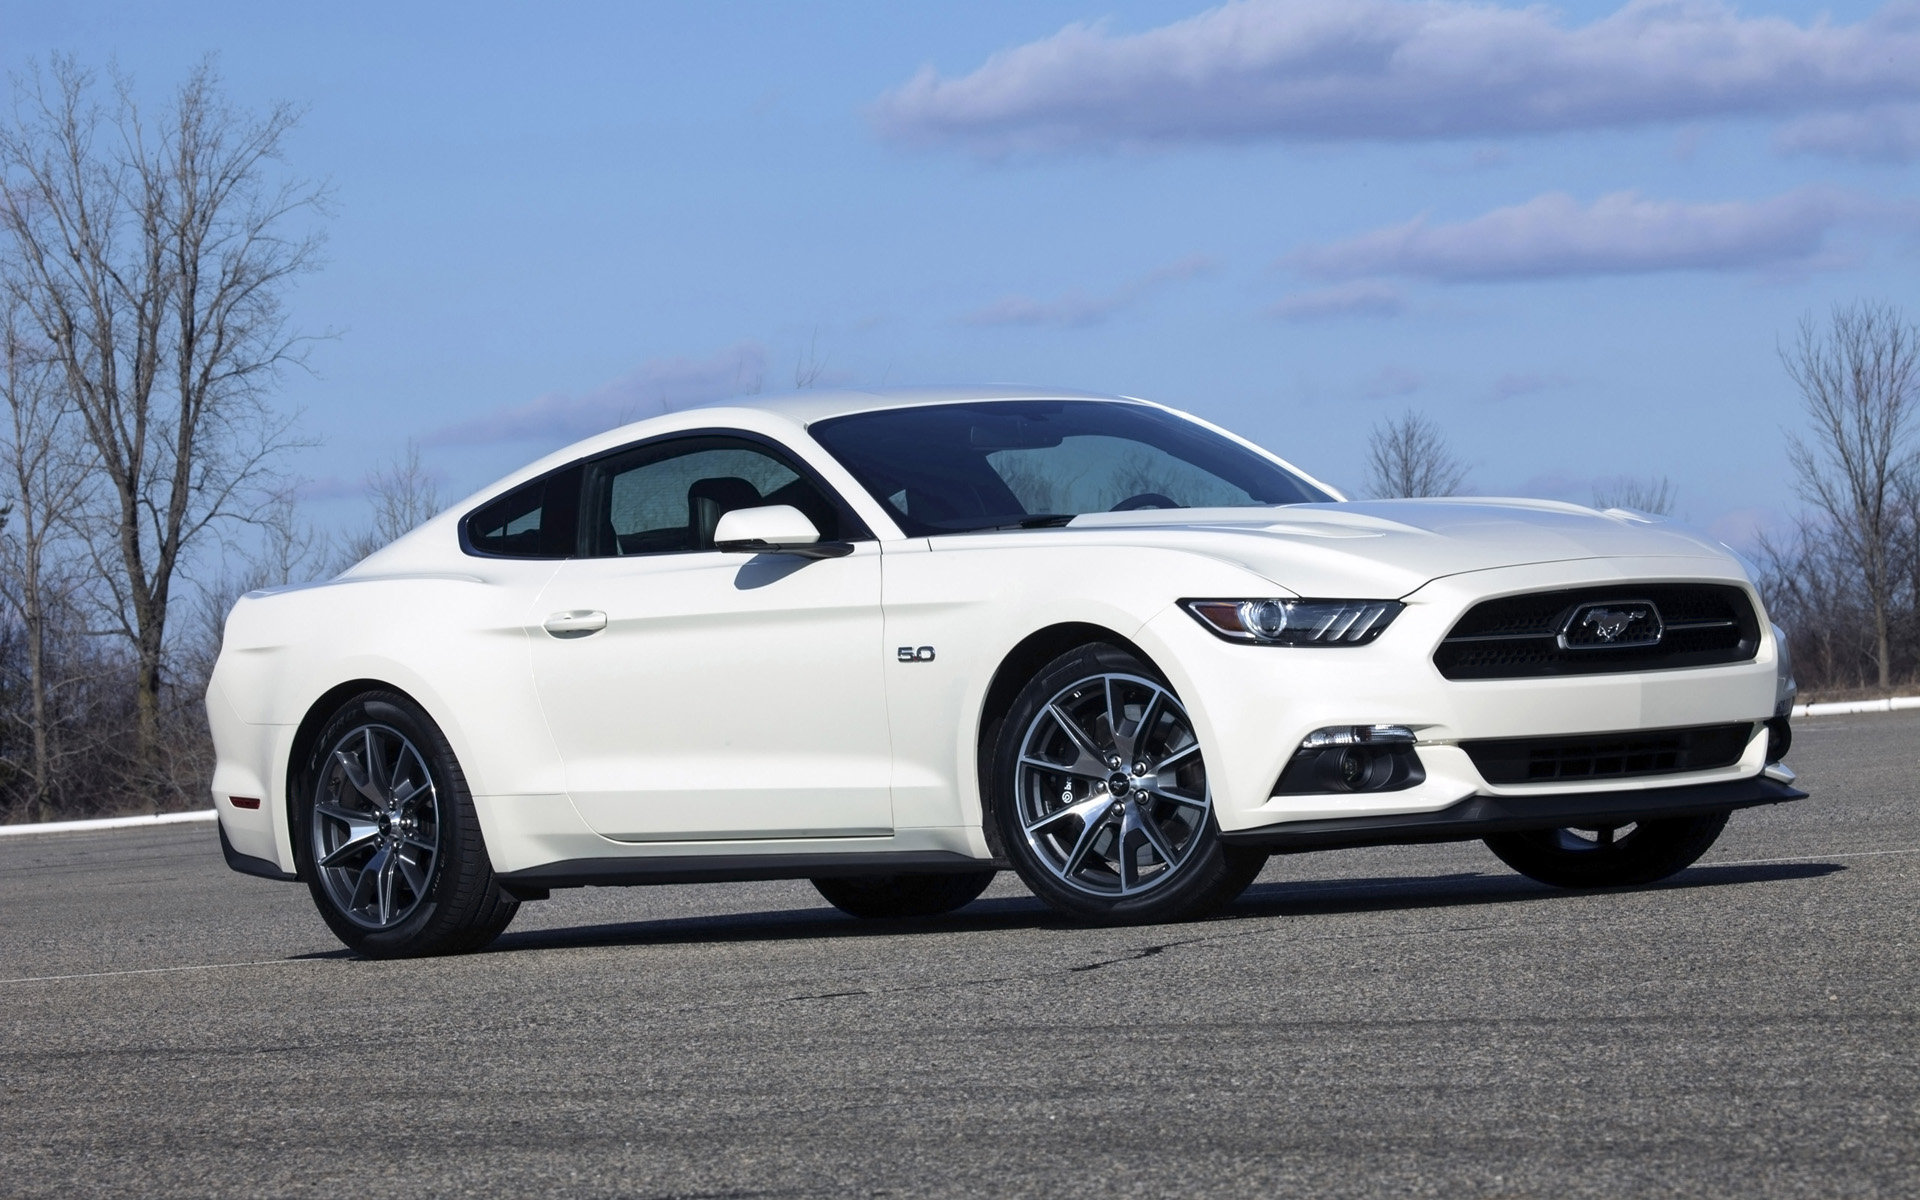 2015 Ford Mustang GT Fastback 50 Year Limited Edition 1920x1200